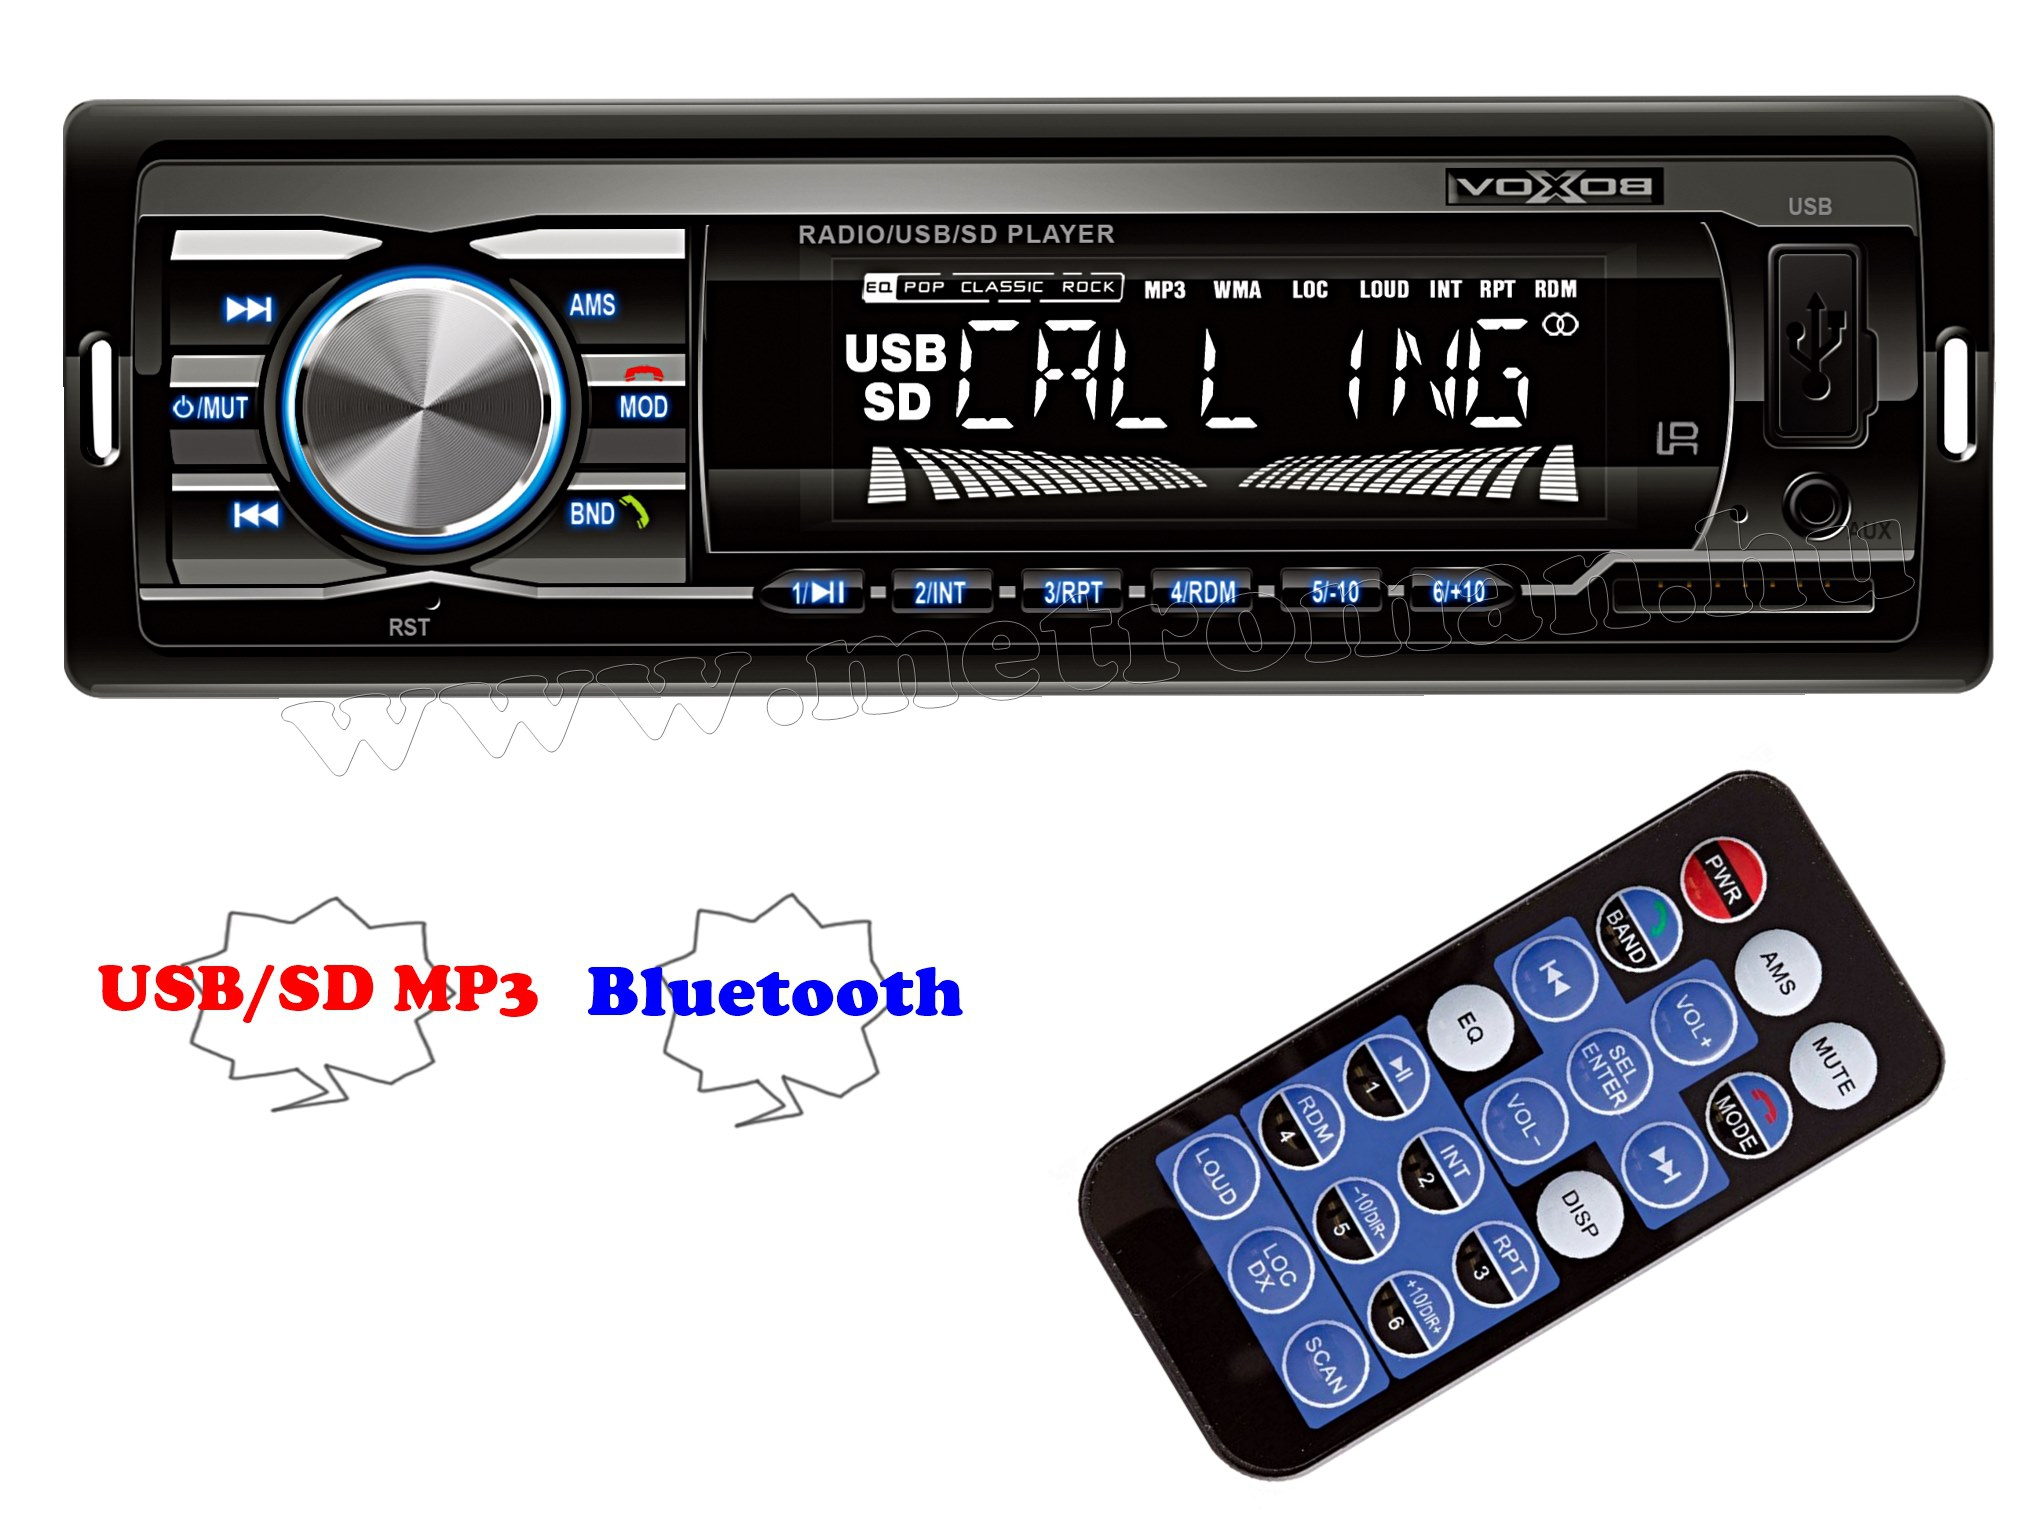 USB / SD MP3 Bluetooth autórádió VoxBox VB 3100 BT